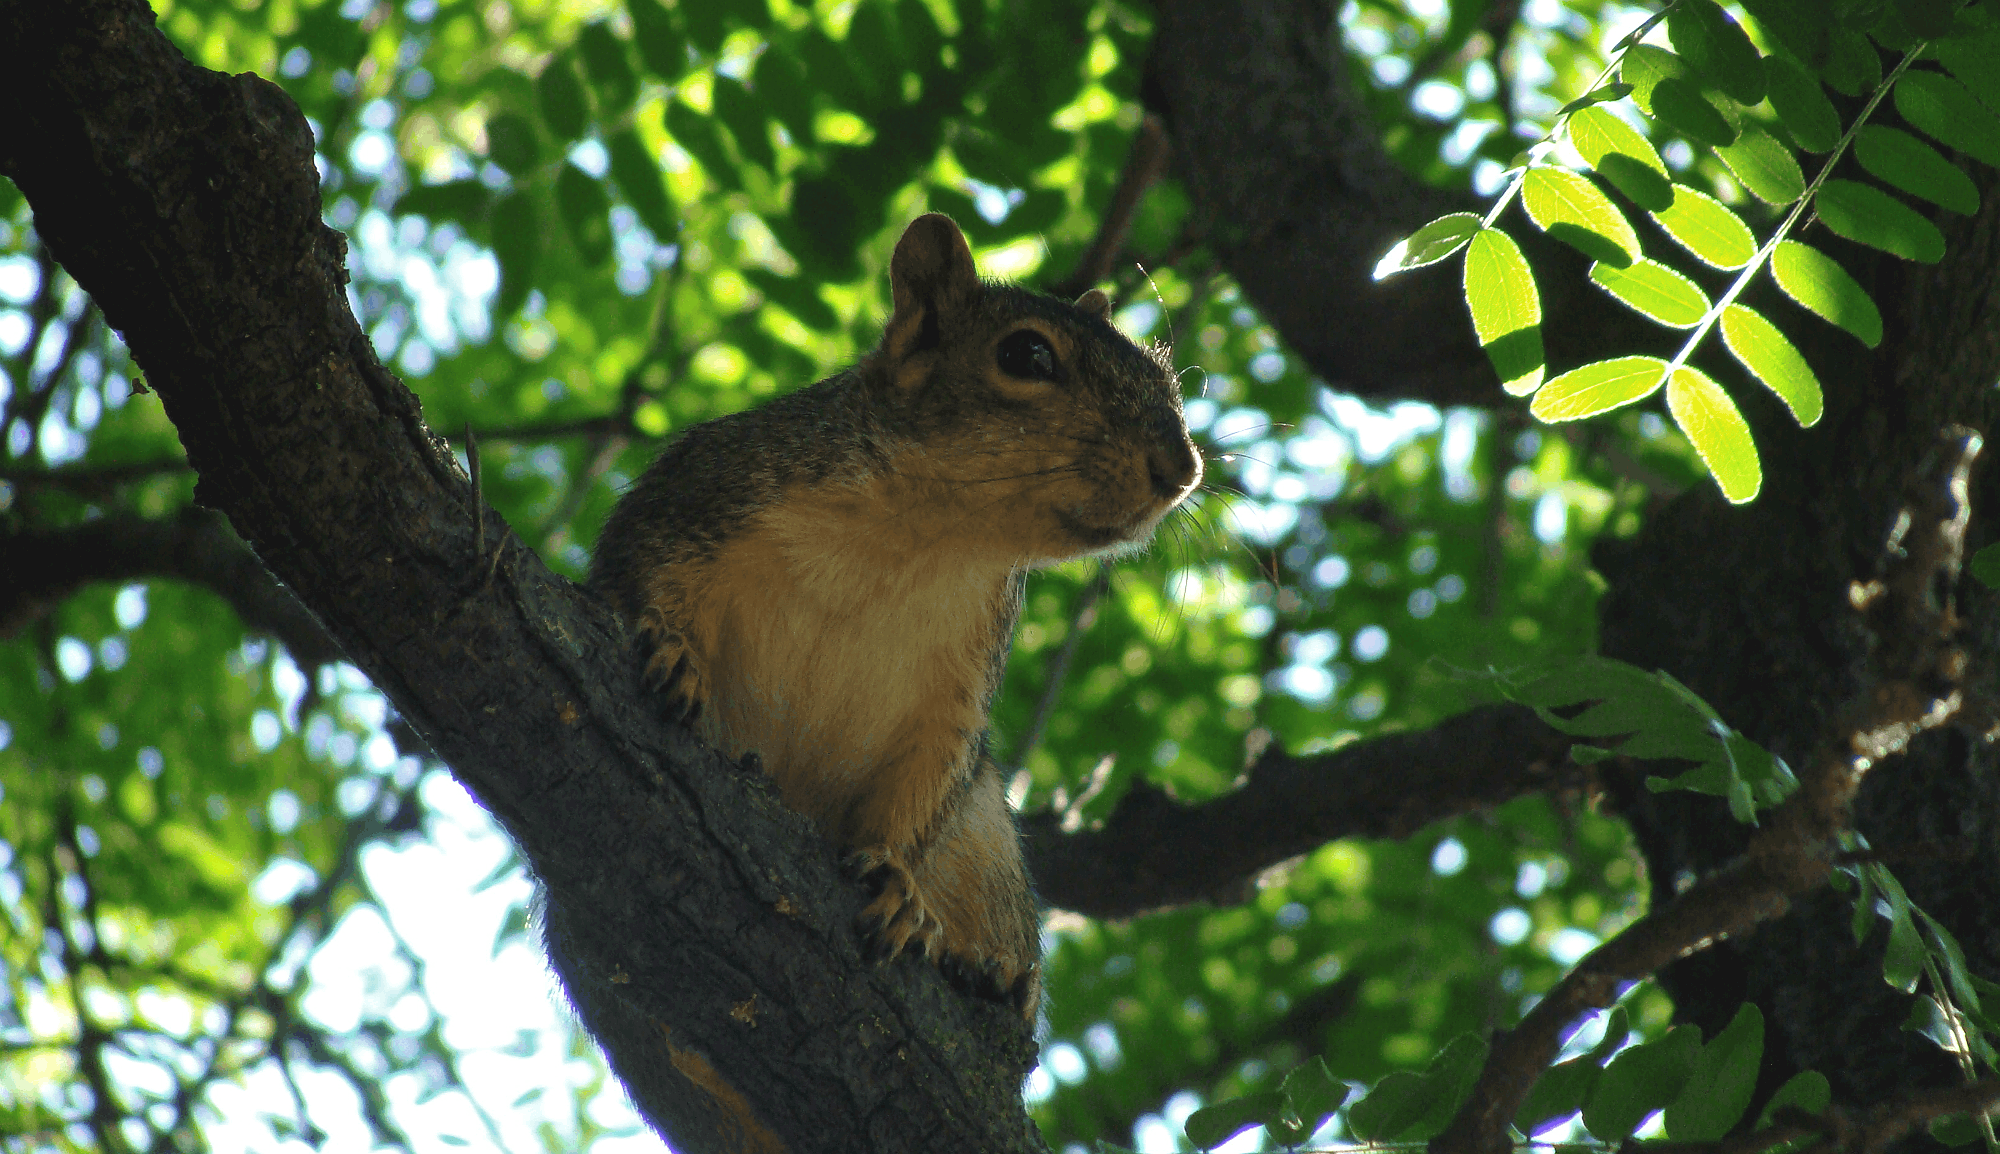 A friendly squirrel in San Jose